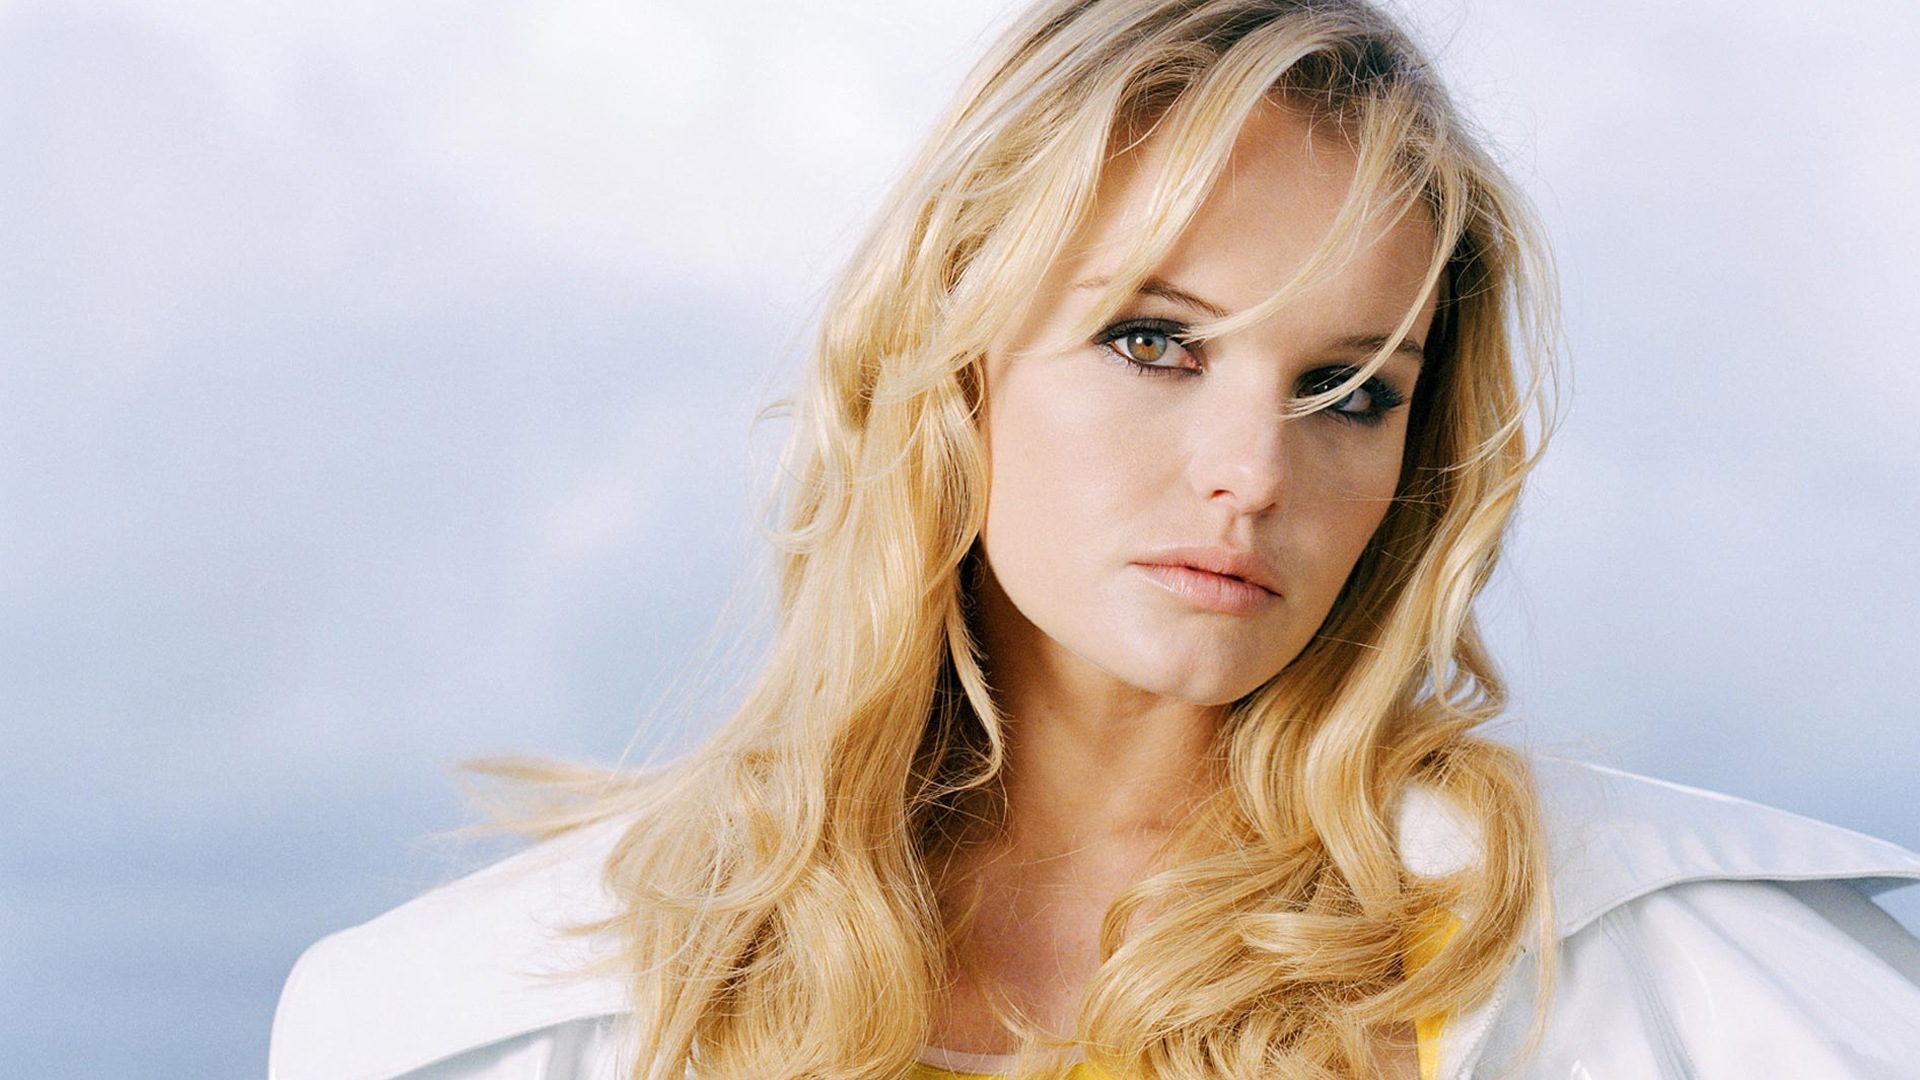 Kate Bosworth Wallpapers HD